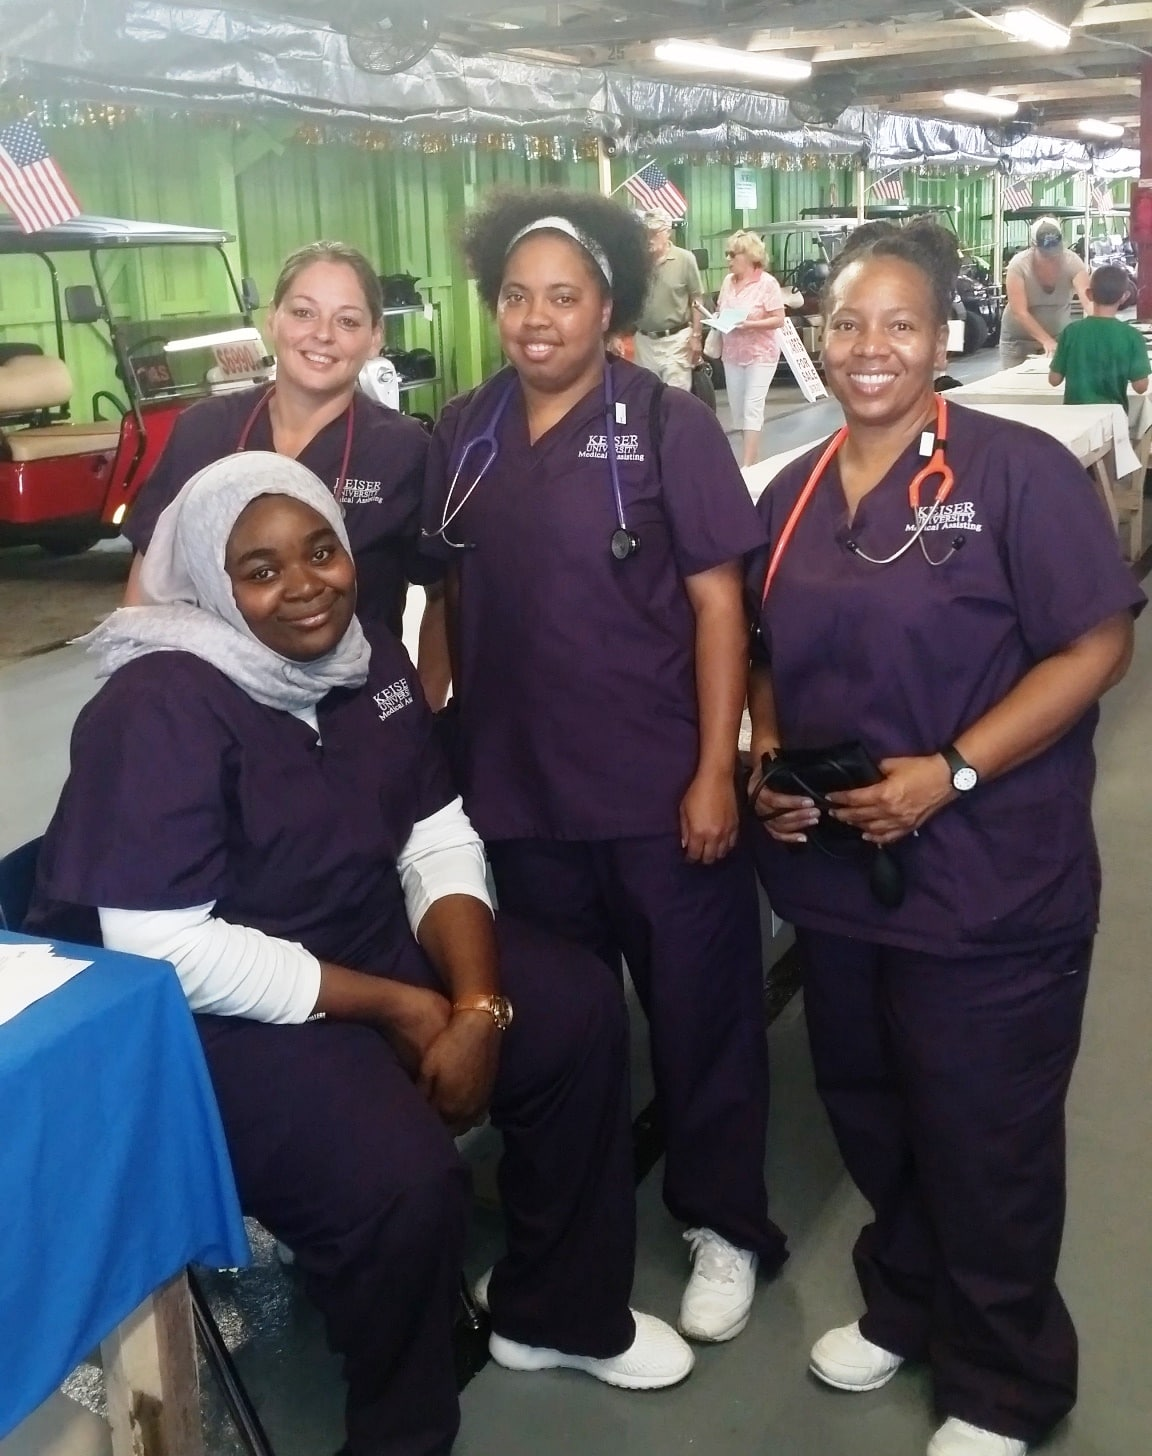 Students from Daytona Beach Participate in a Wellness and Health Fair